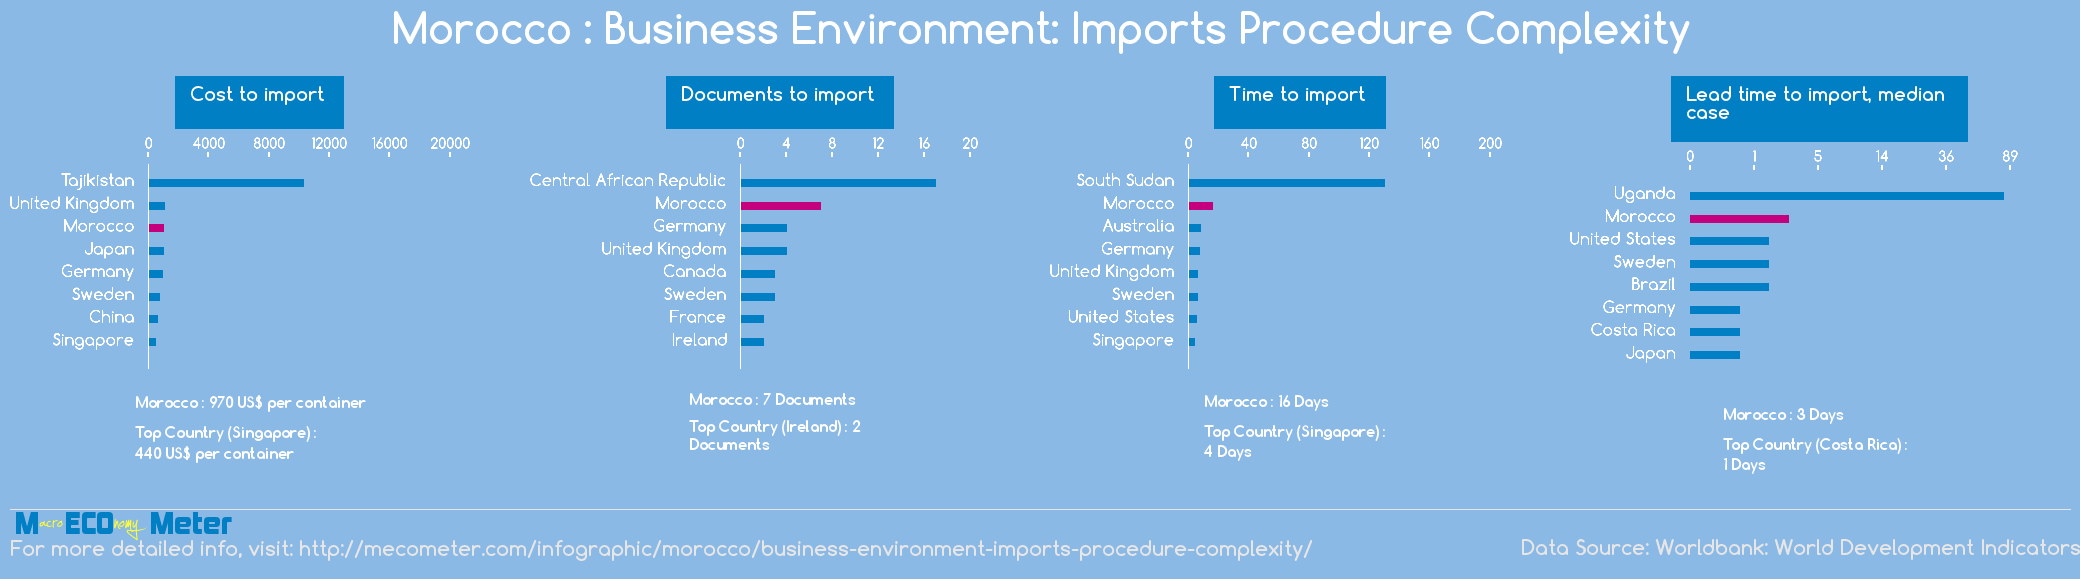 Morocco : Business Environment: Imports Procedure Complexity